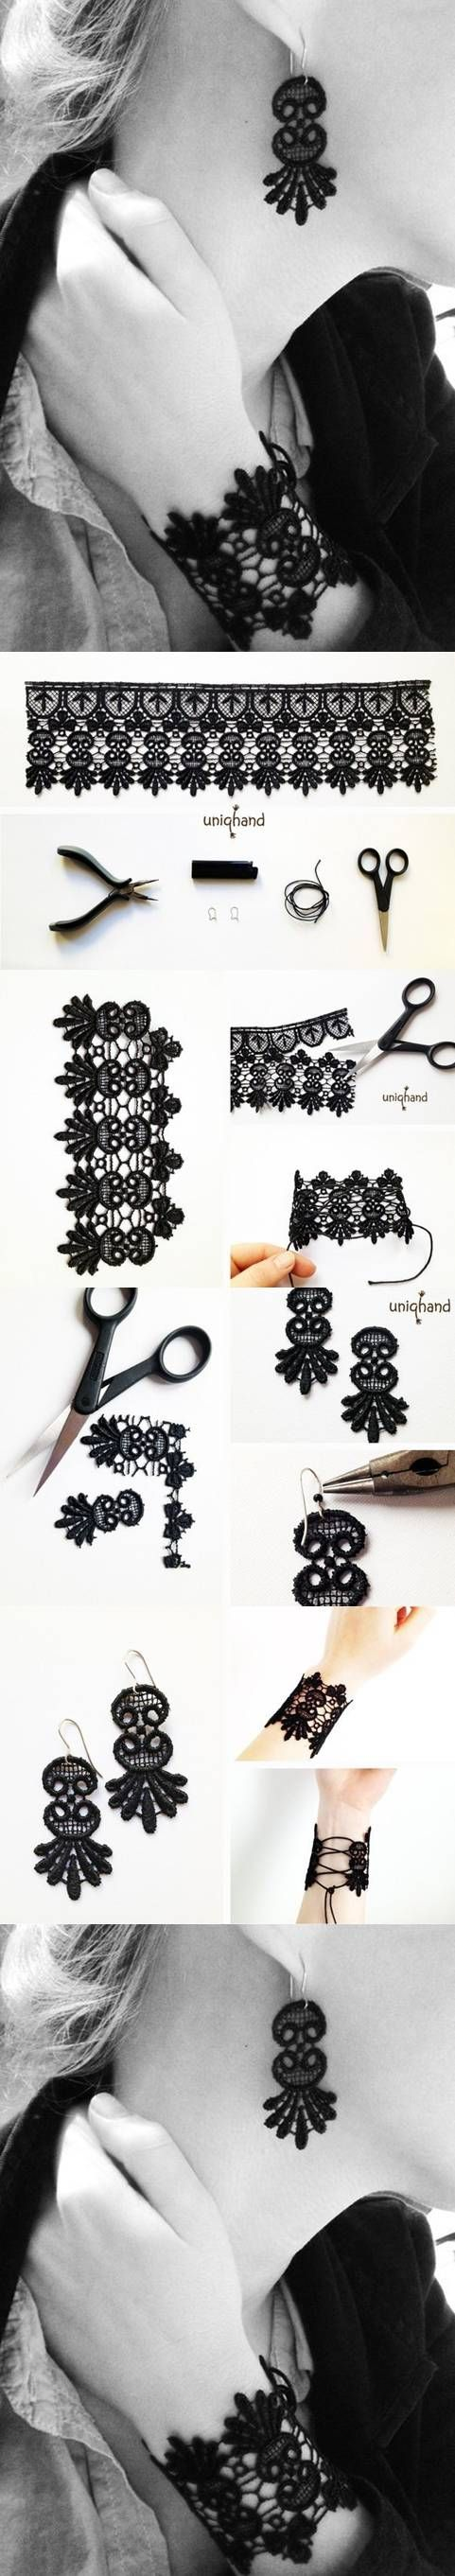 DIY Lace Bracelet and Earrings